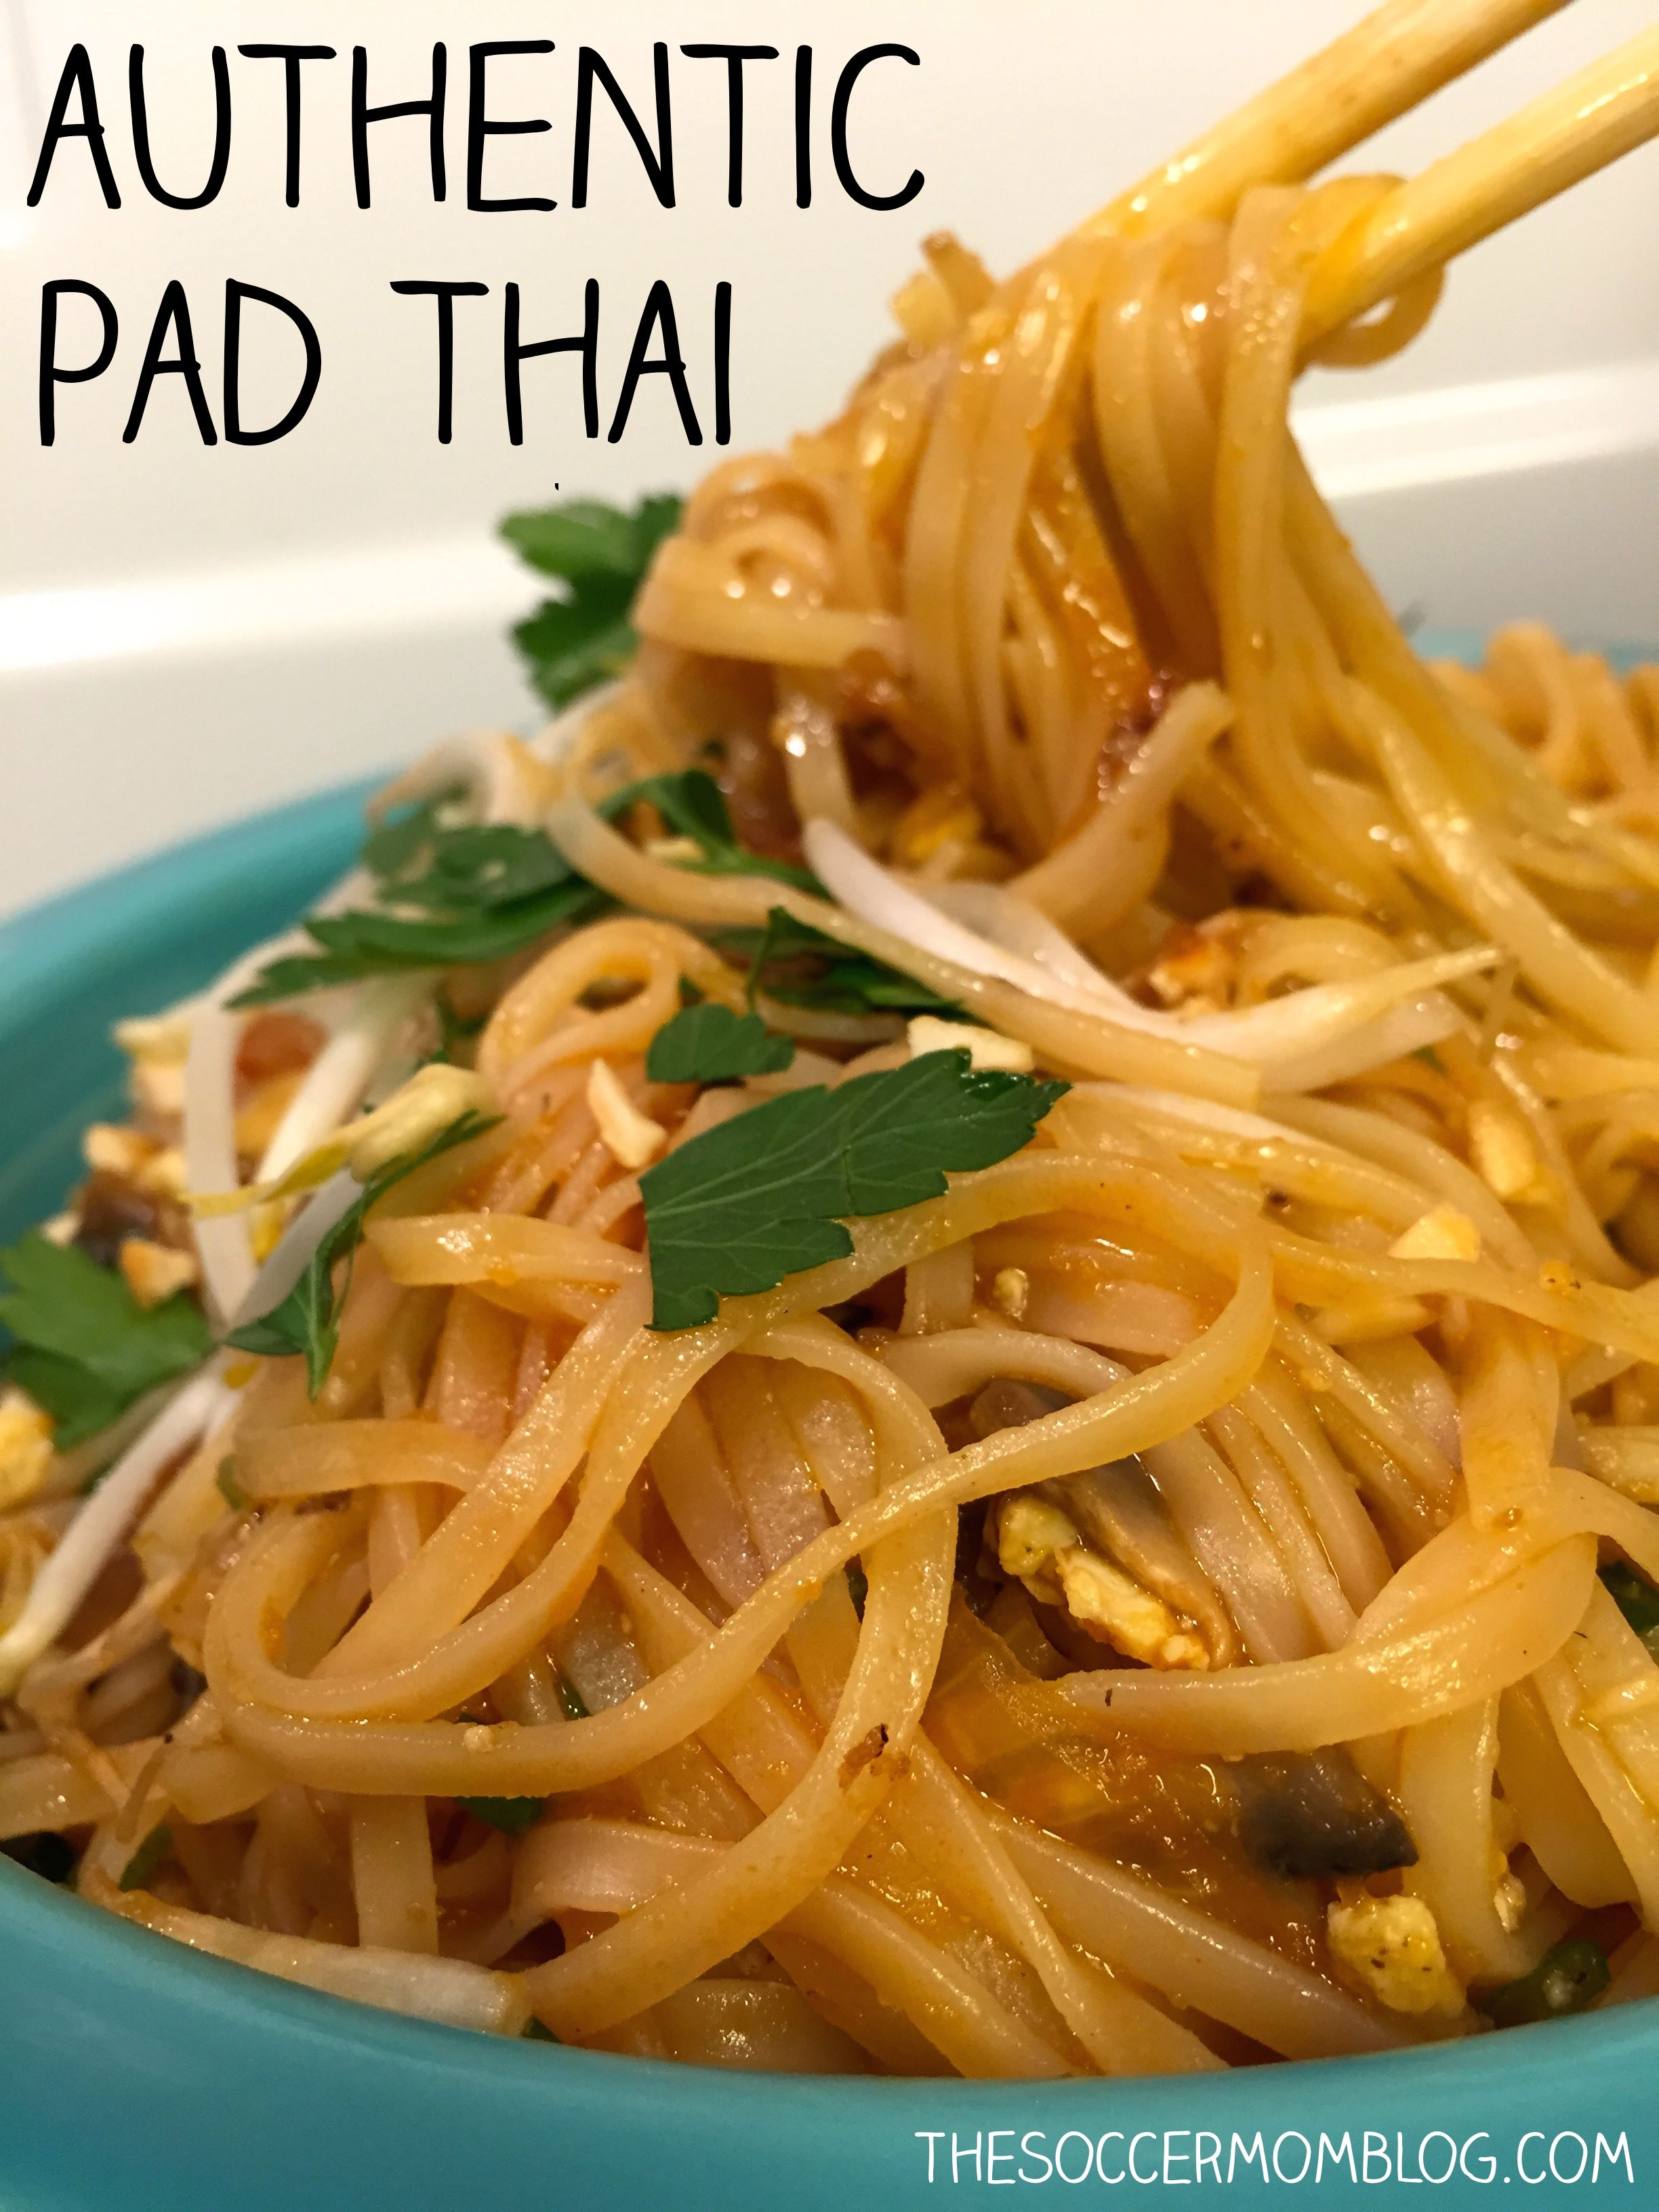 Restaurant Style Chicken Pad Thai Ready In 30 Minutes Recipe Asian Recipes Recipes Pad Thai